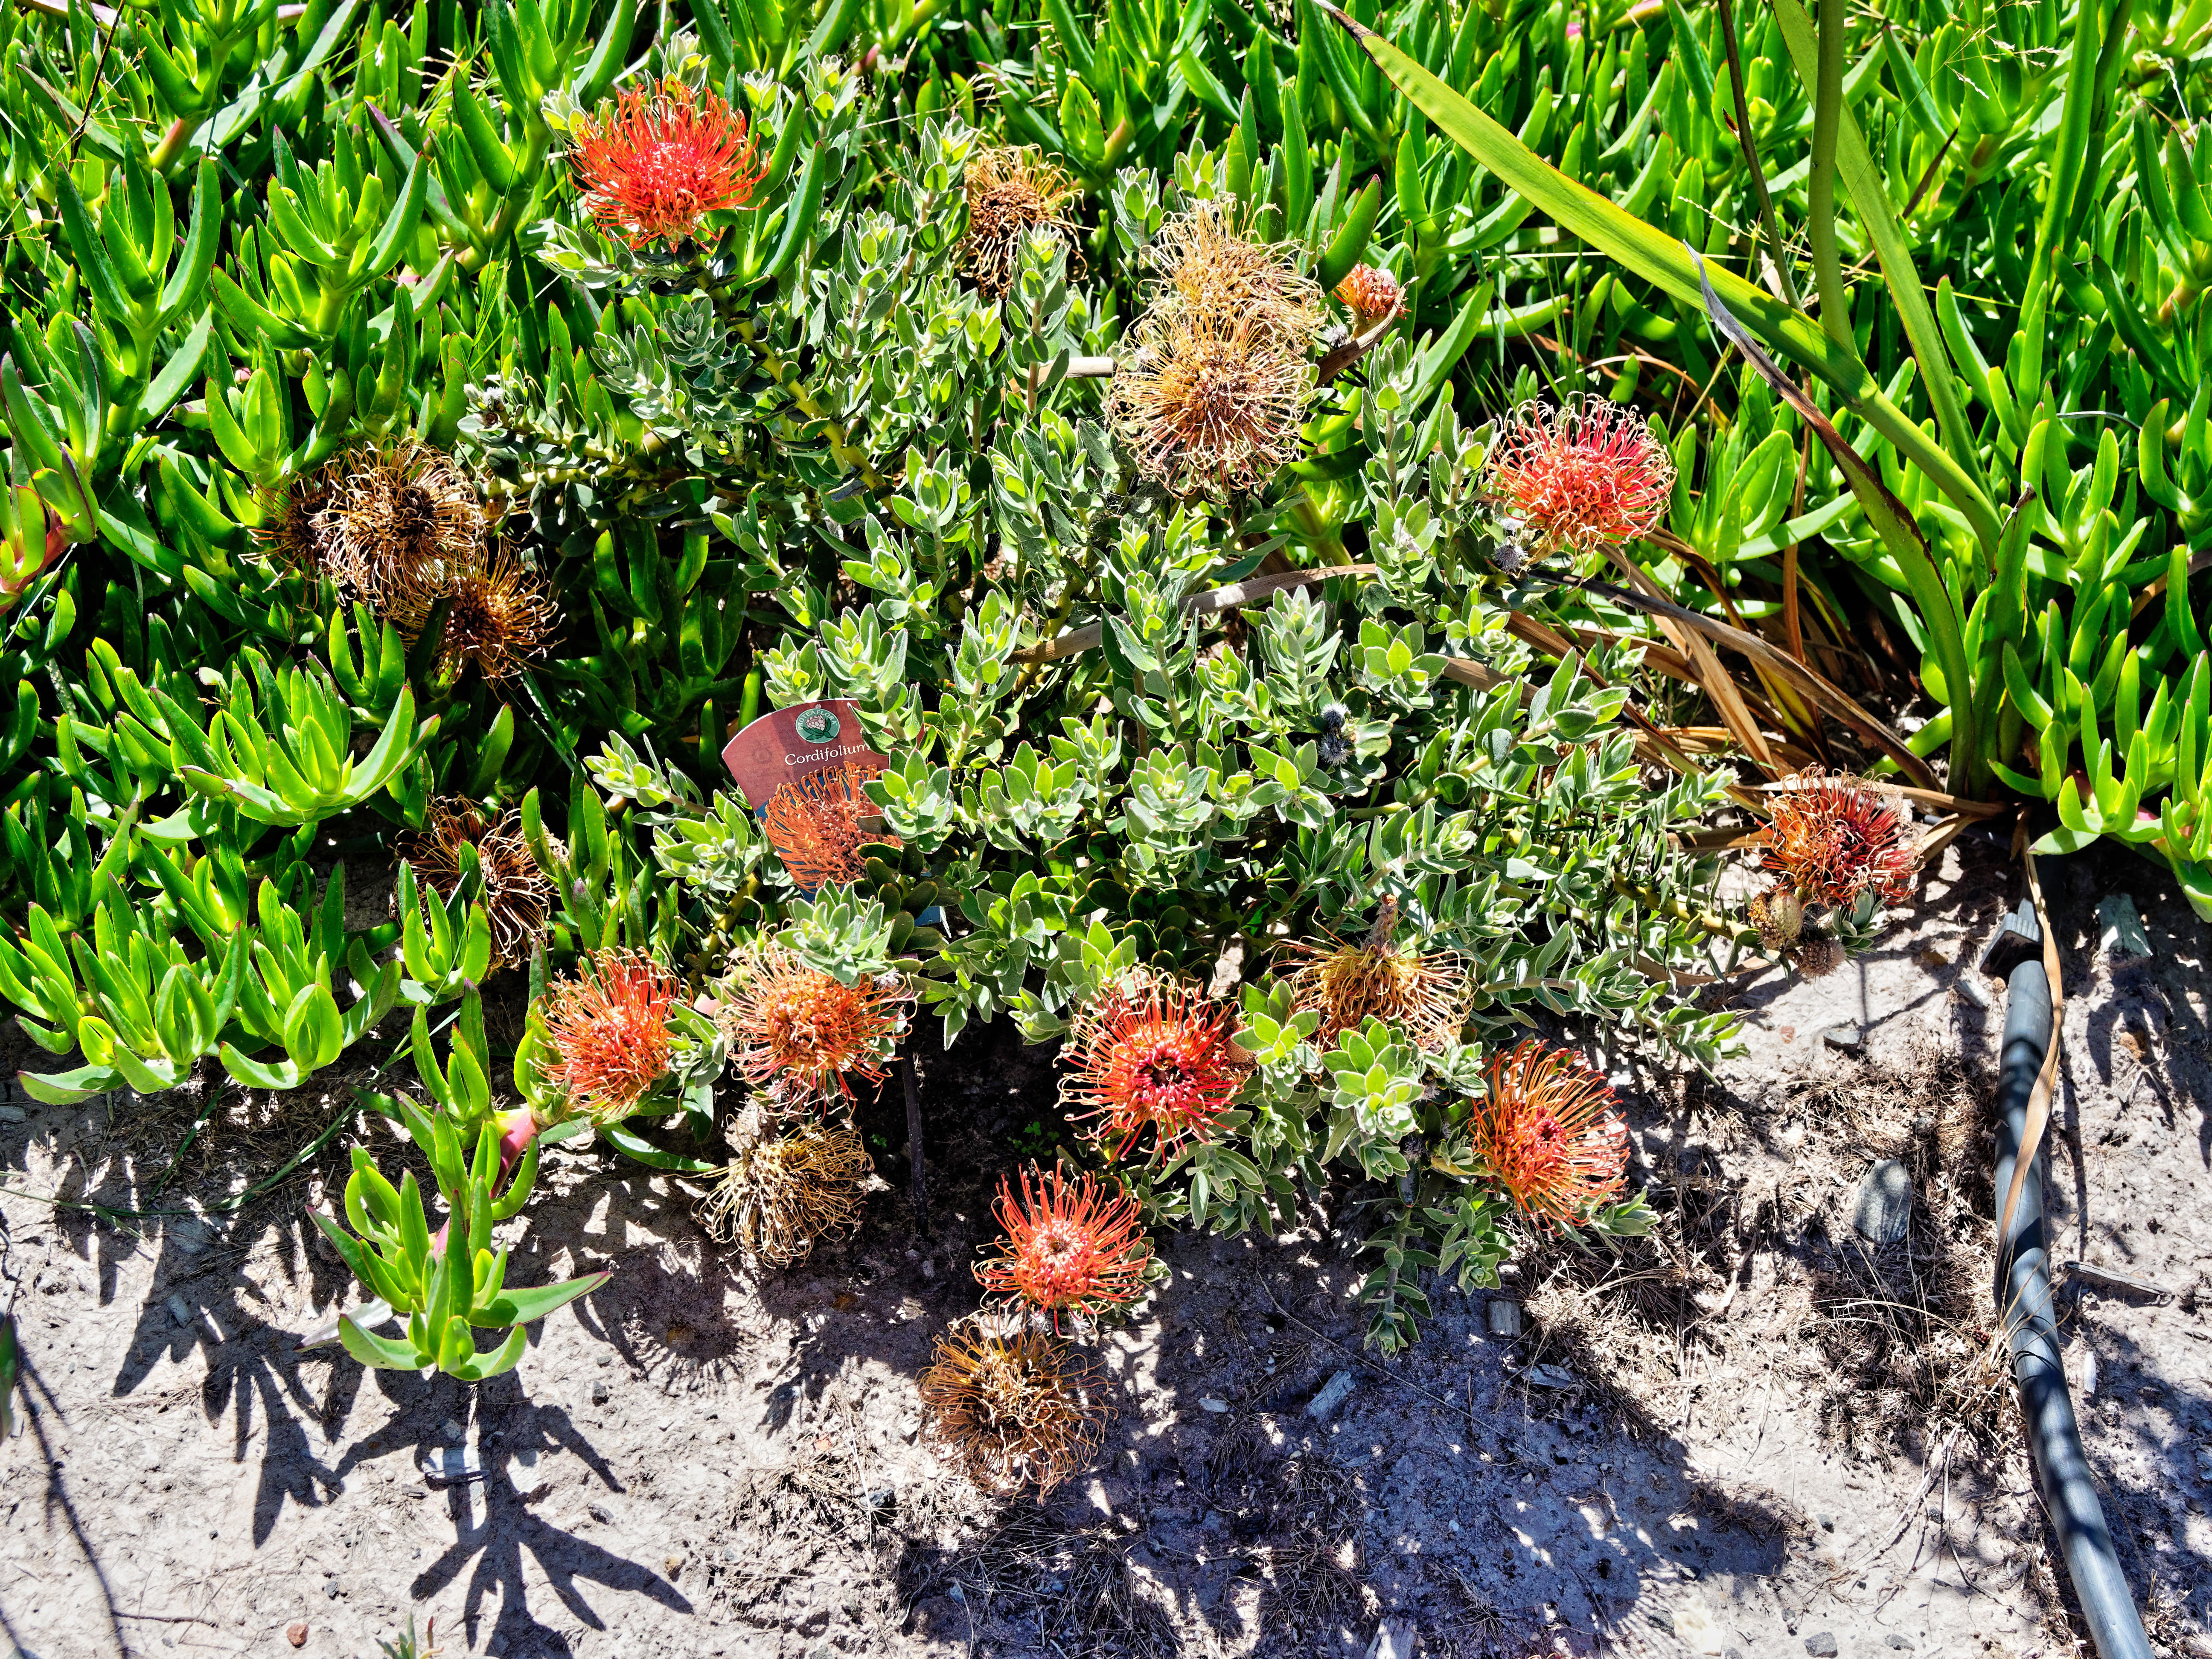 This should be Leucospermum.jpeg.  Is it missing?